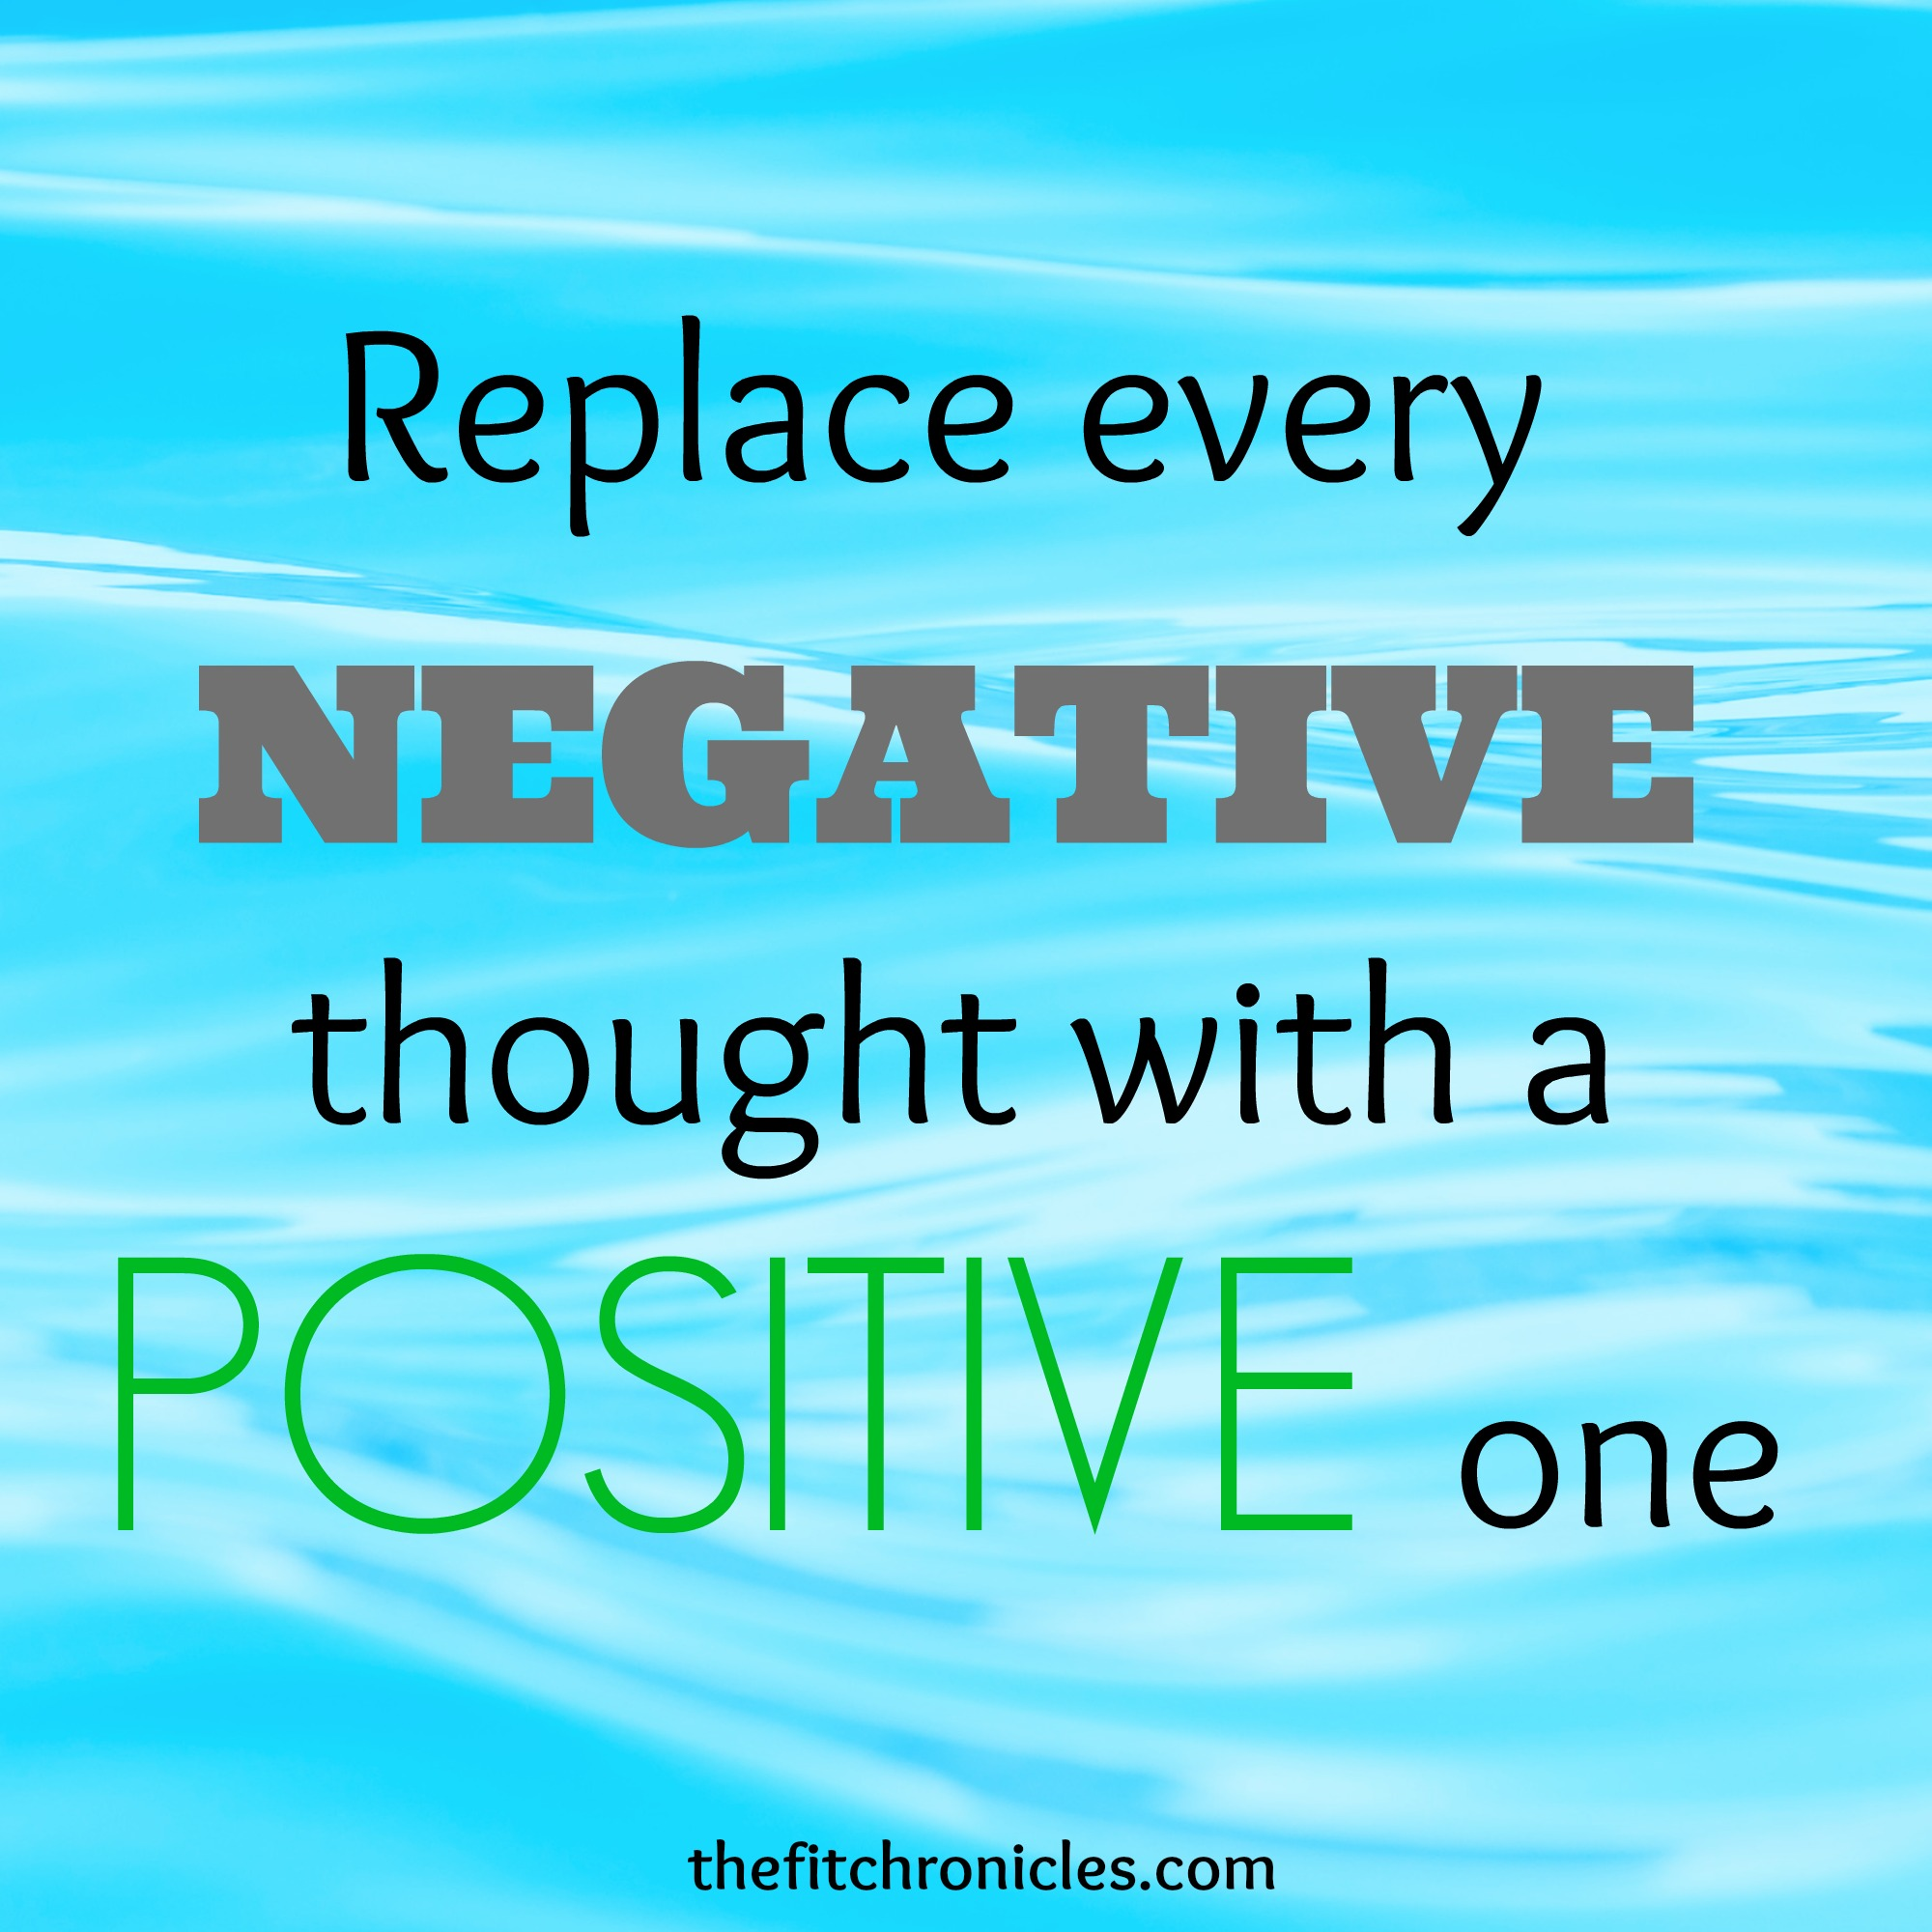 Positive of Power thinking quotes best photo